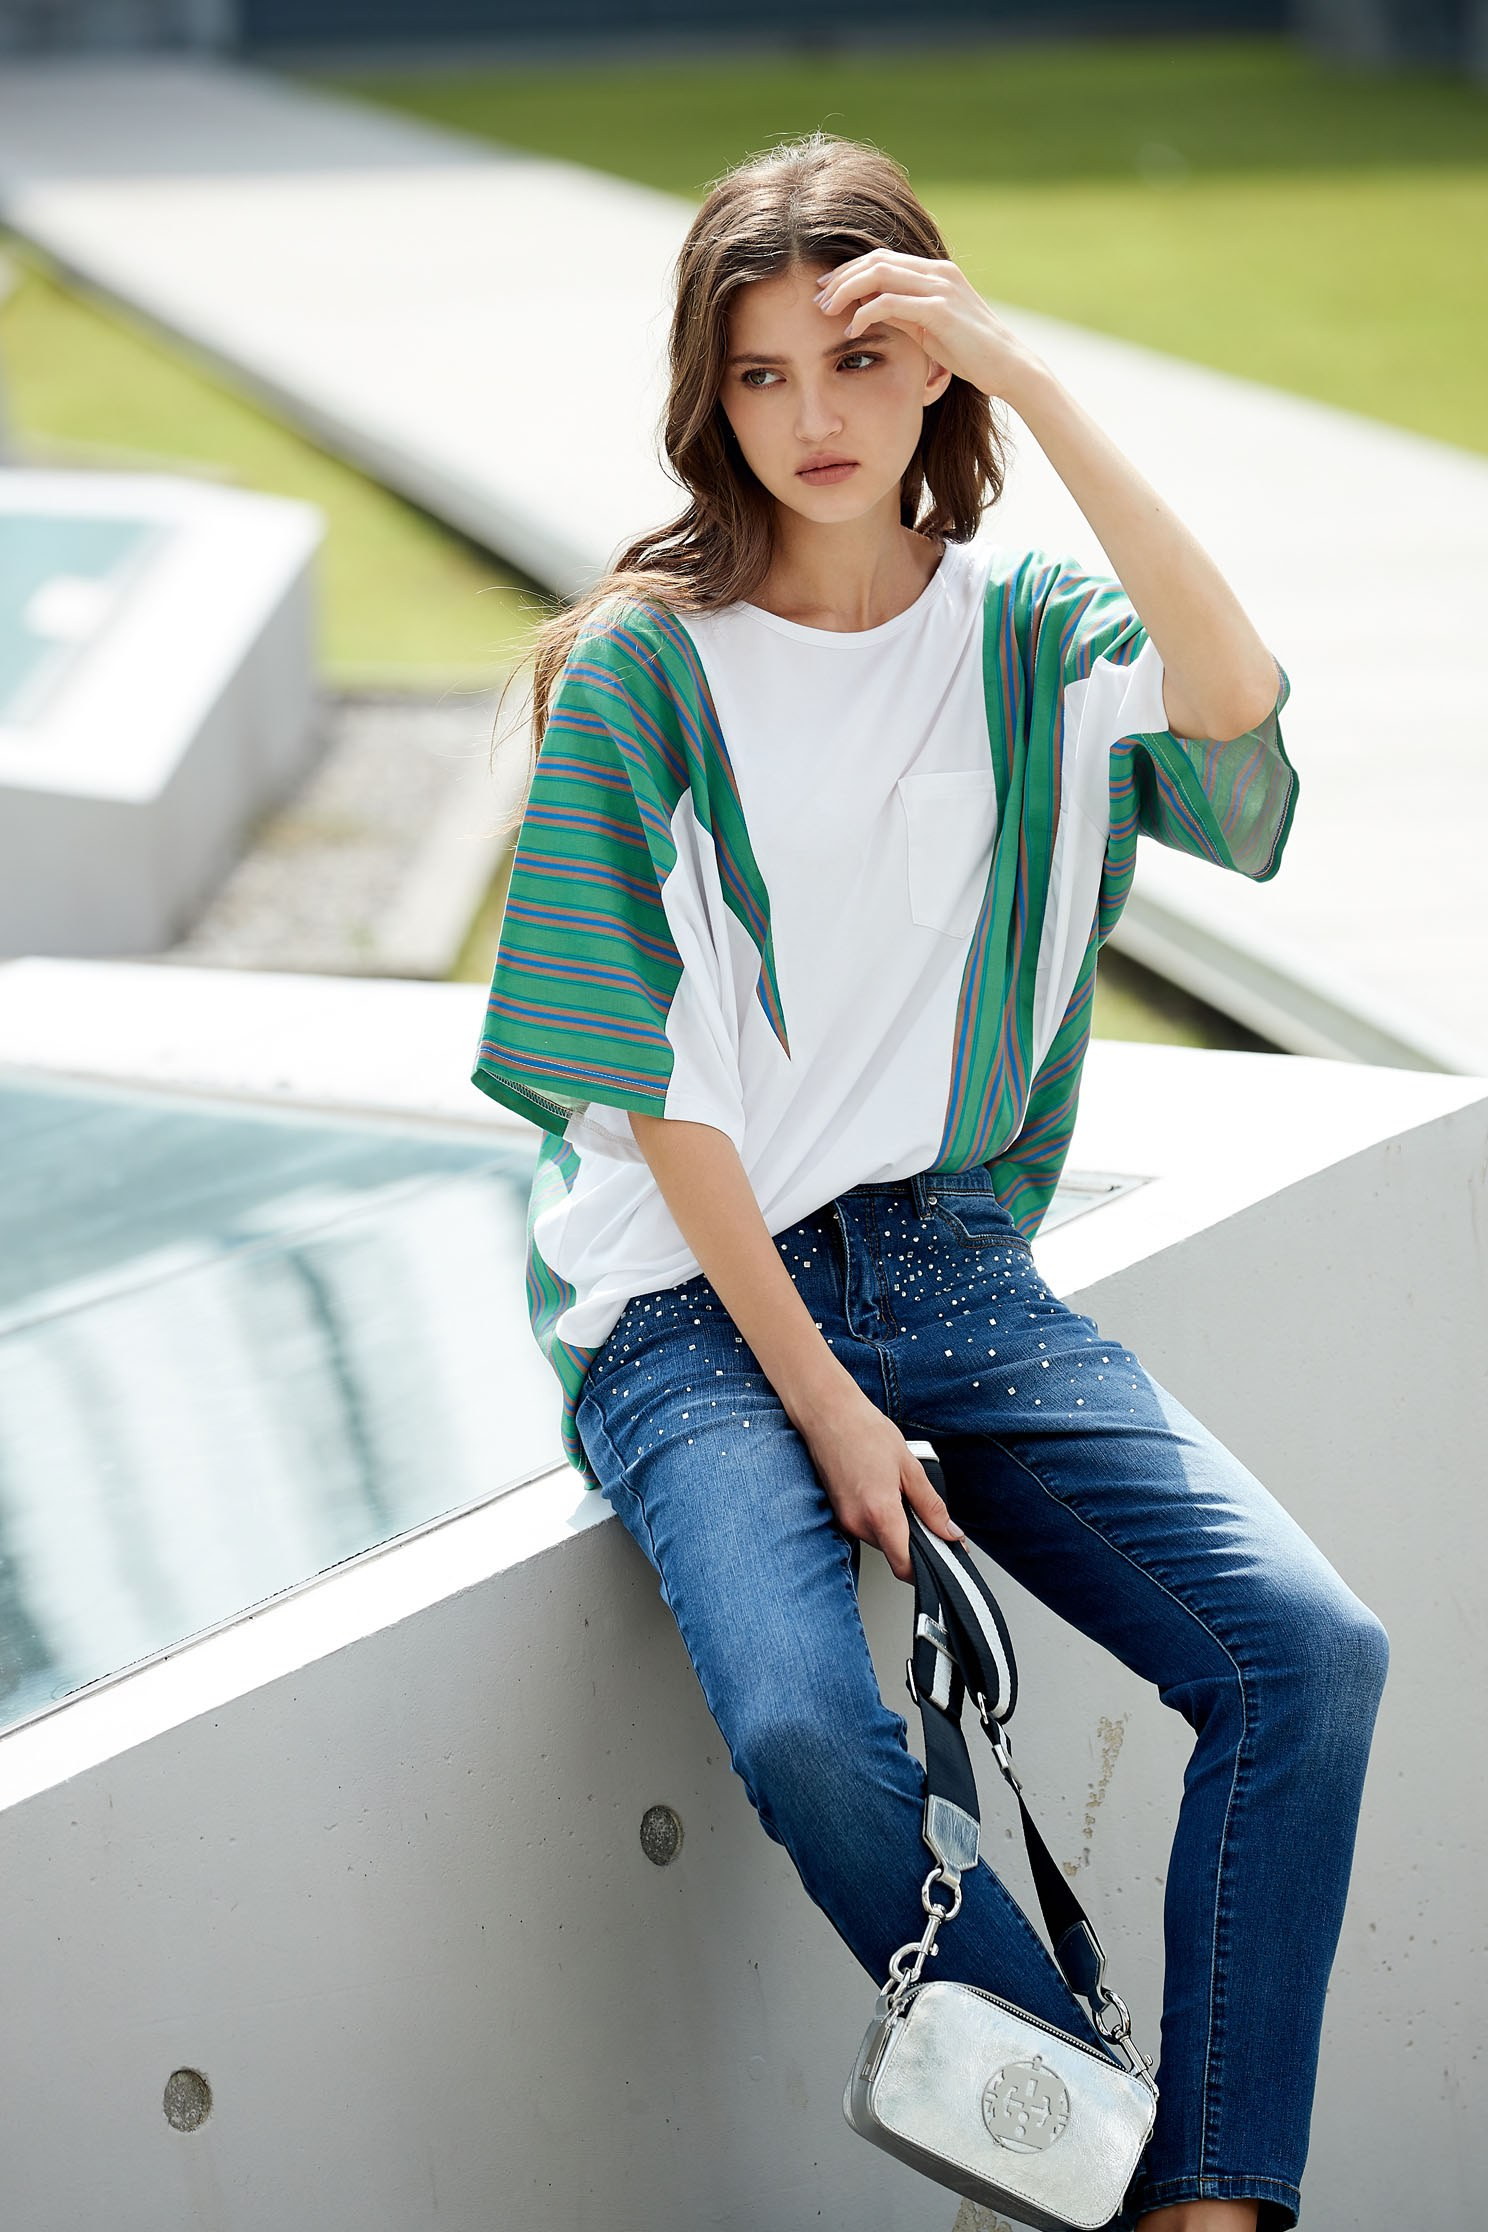 Stitching fashion design five-point sleeve shirt,top,elbowsleevetop,blouse